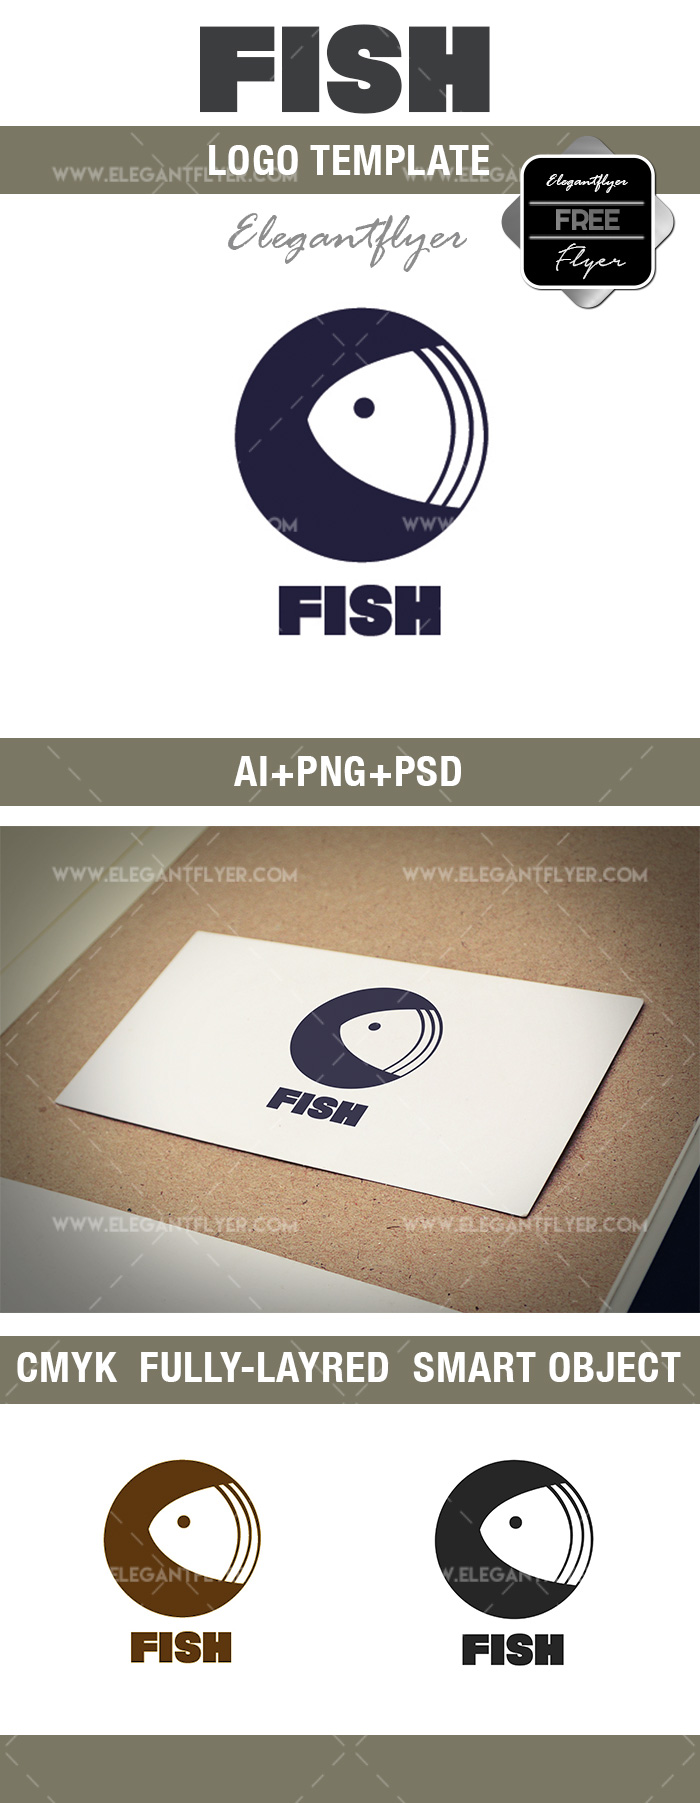 Free Big Fish Logo Template